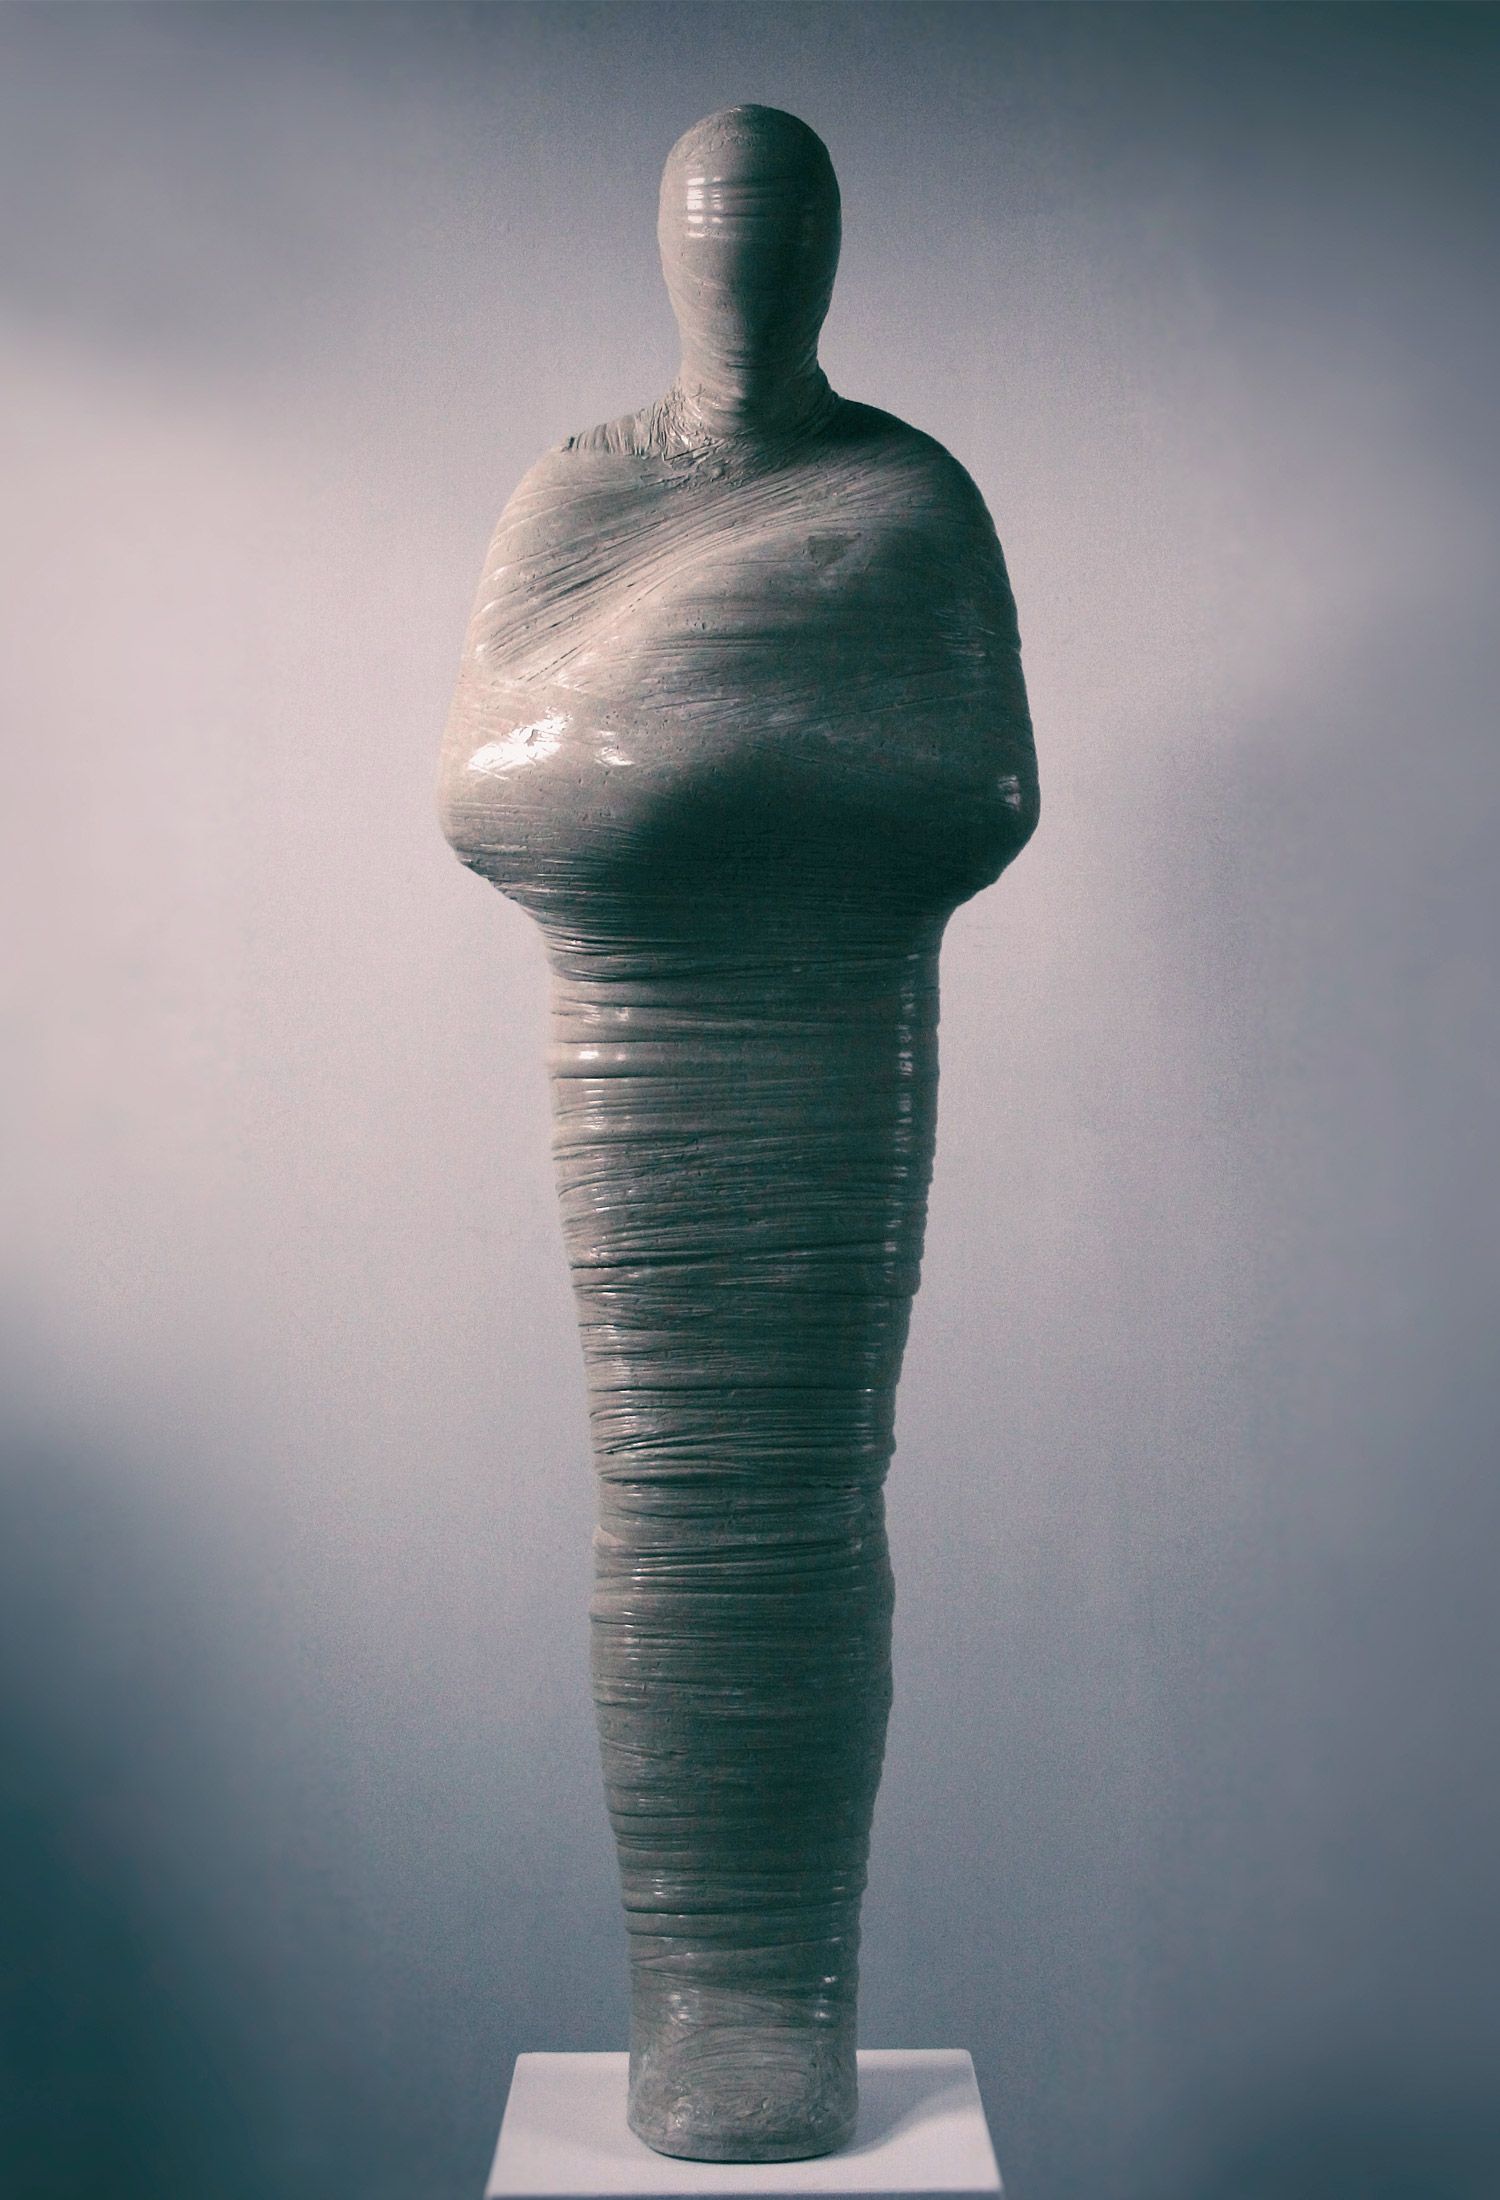 Strange Situation  .  2015 . Gypsum . 75 x 22 x 16 in